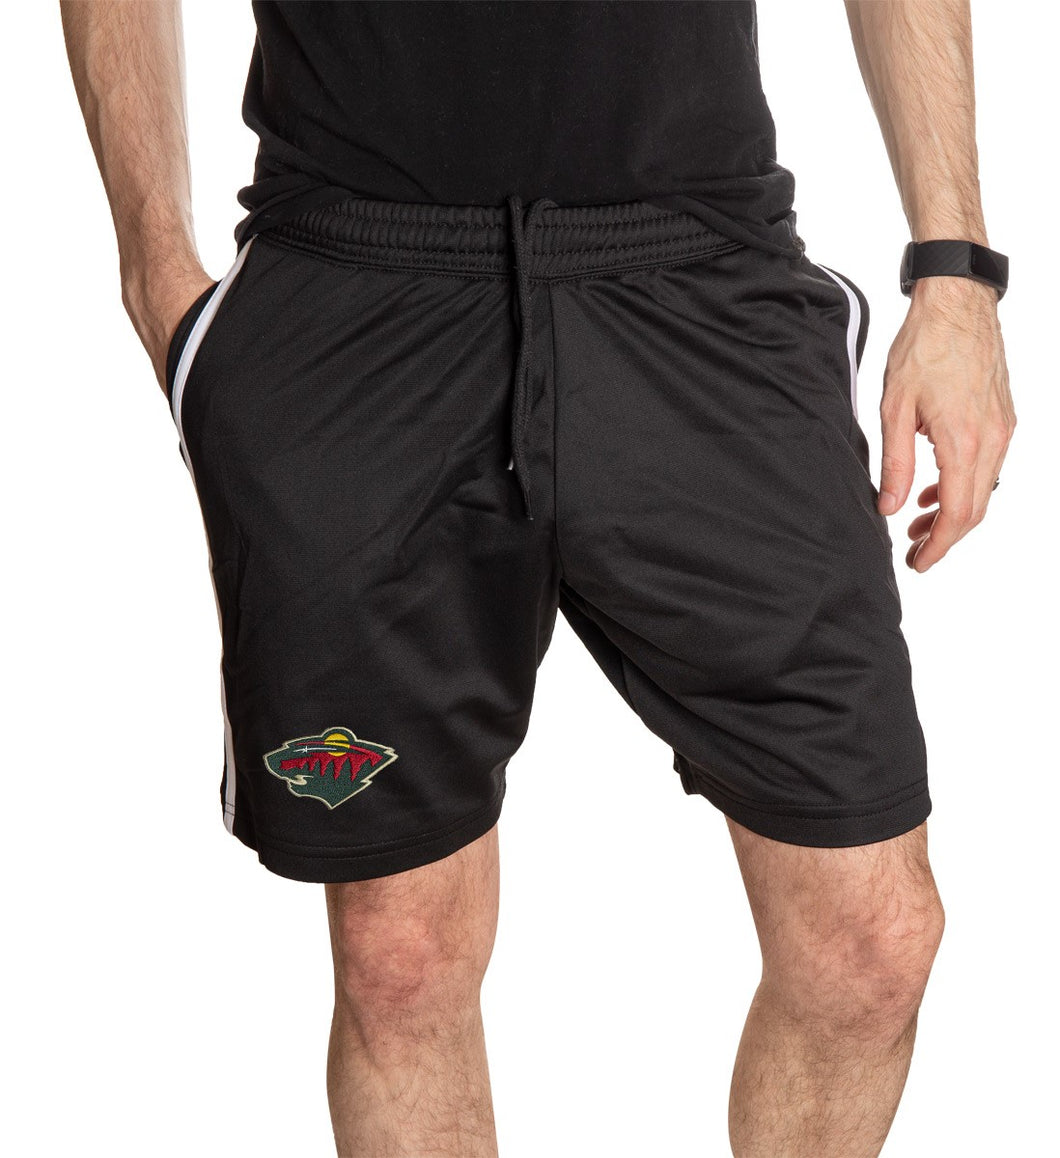 Minnesota Wild Two-Stripe Shorts for Men Front View.